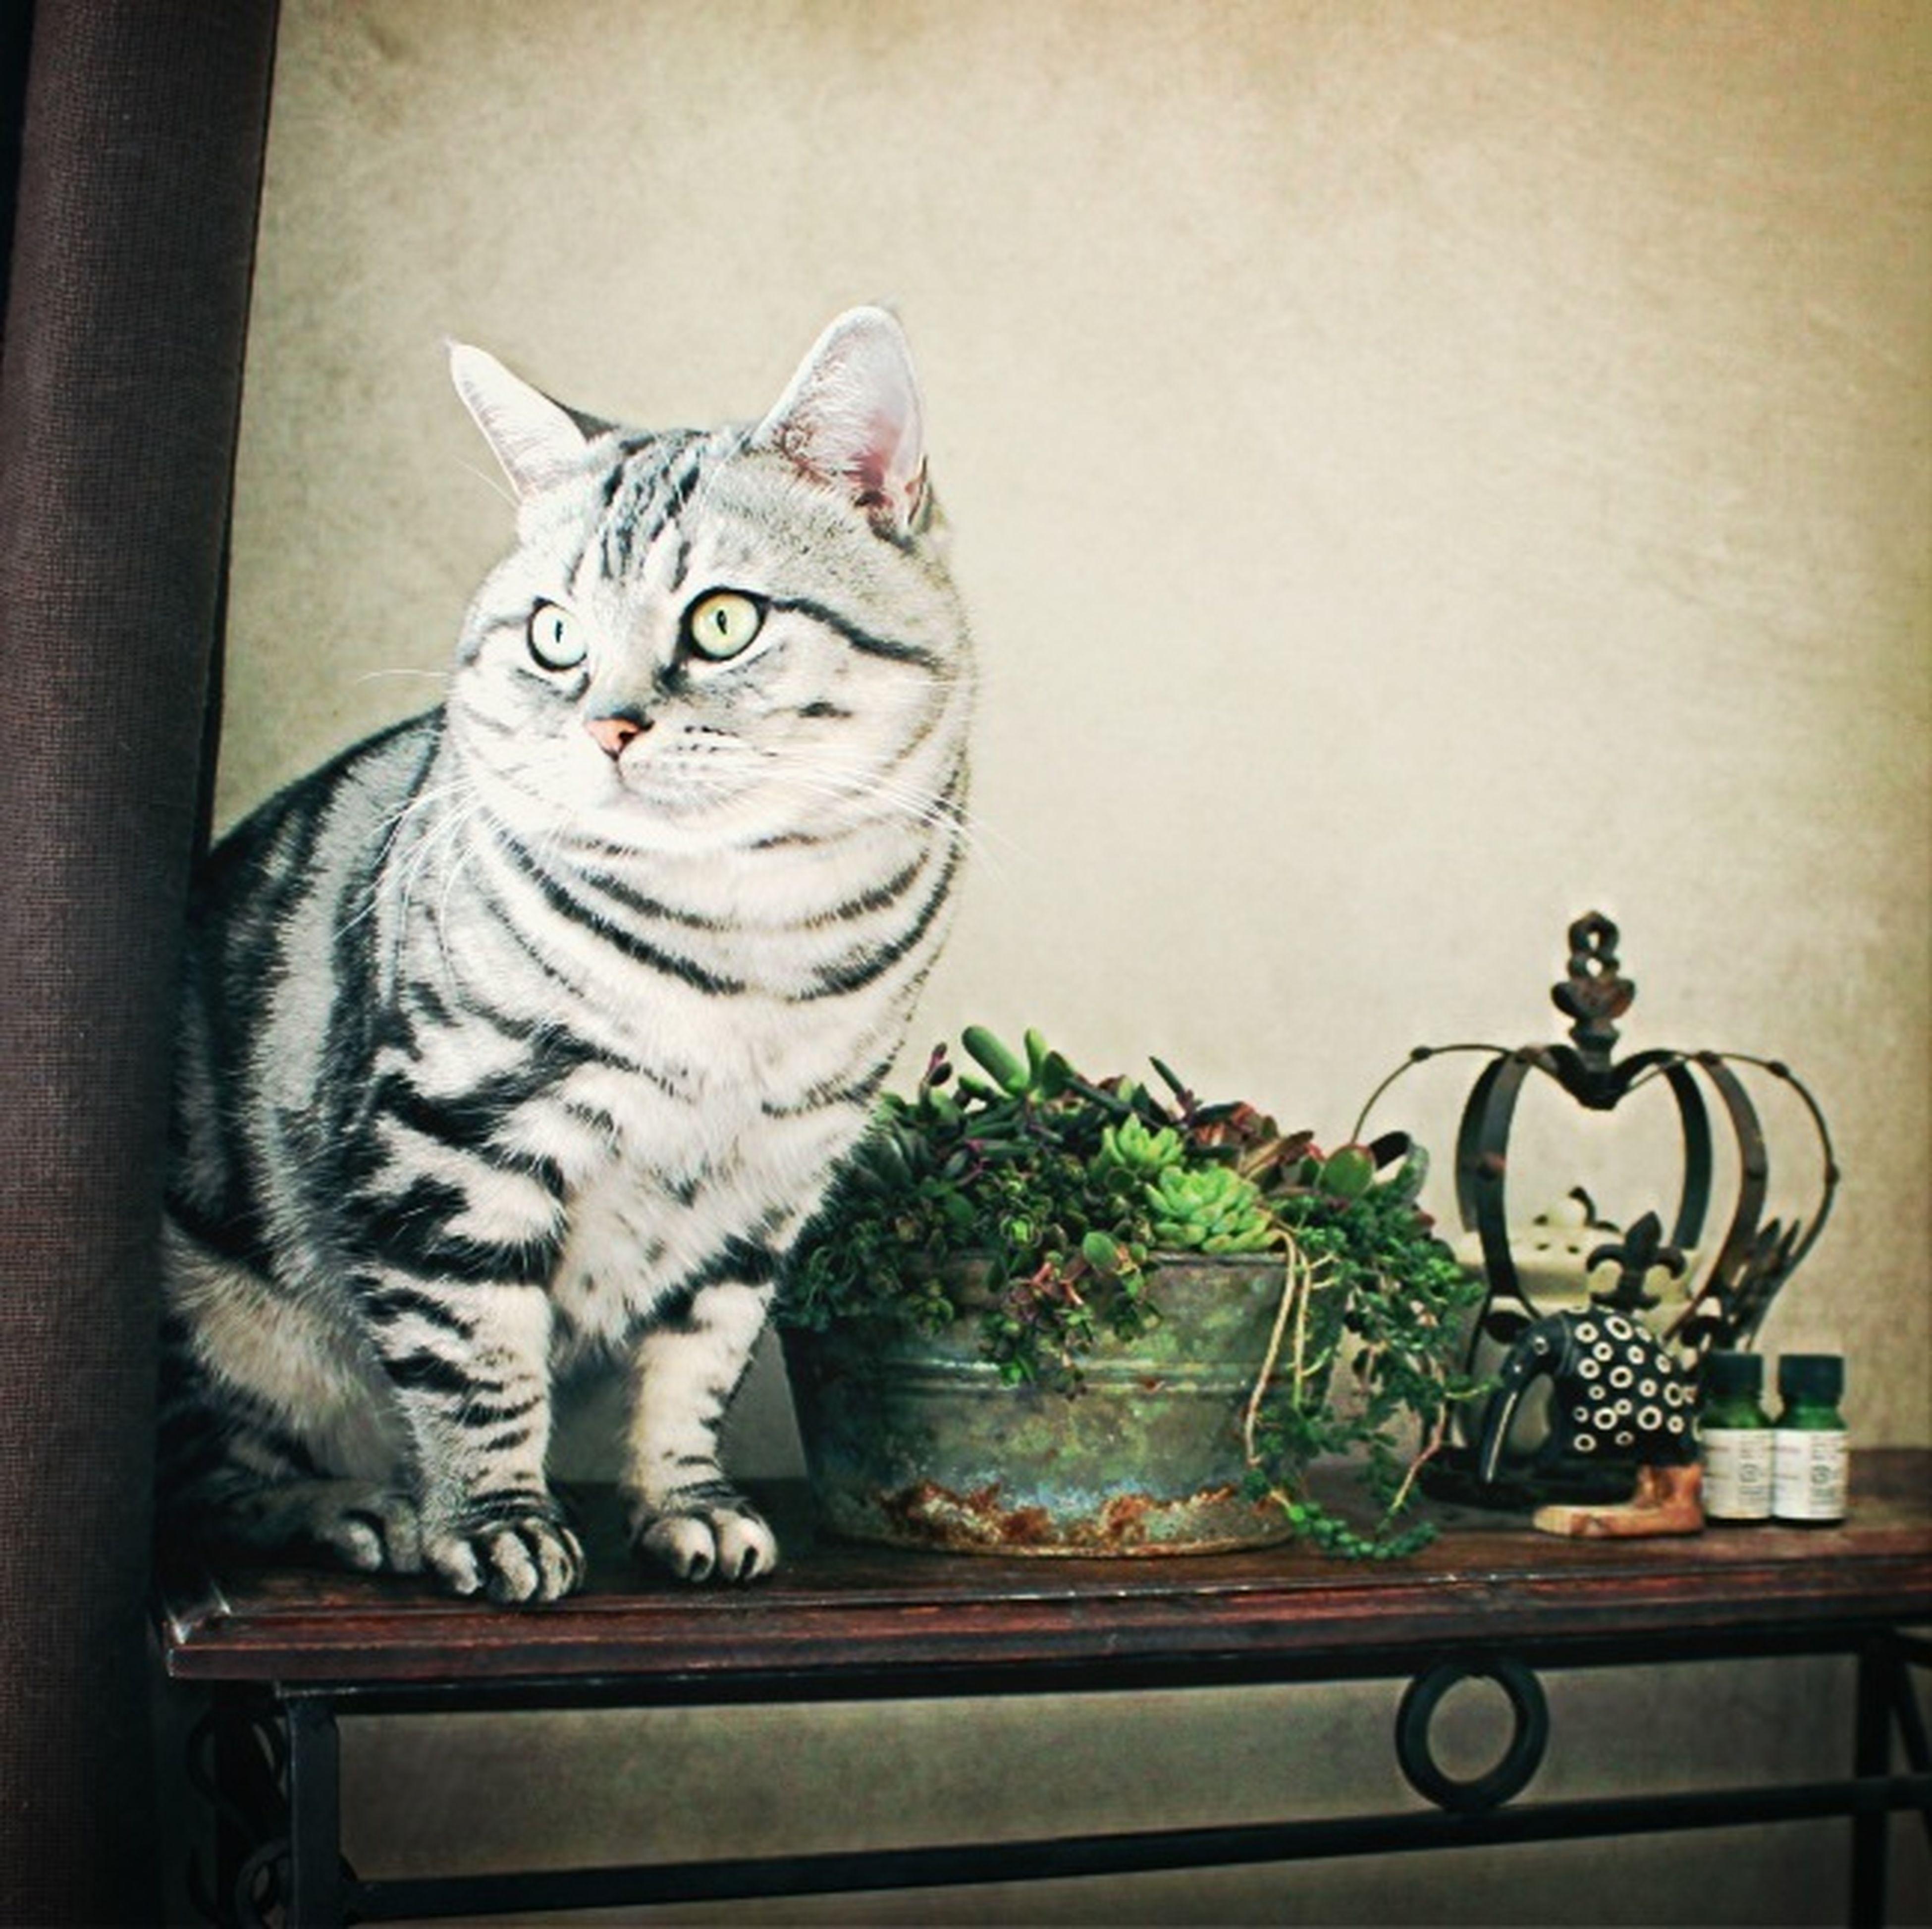 domestic cat, cat, pets, animal themes, one animal, domestic animals, feline, indoors, mammal, portrait, potted plant, whisker, looking at camera, sitting, no people, relaxation, plant, alertness, staring, table